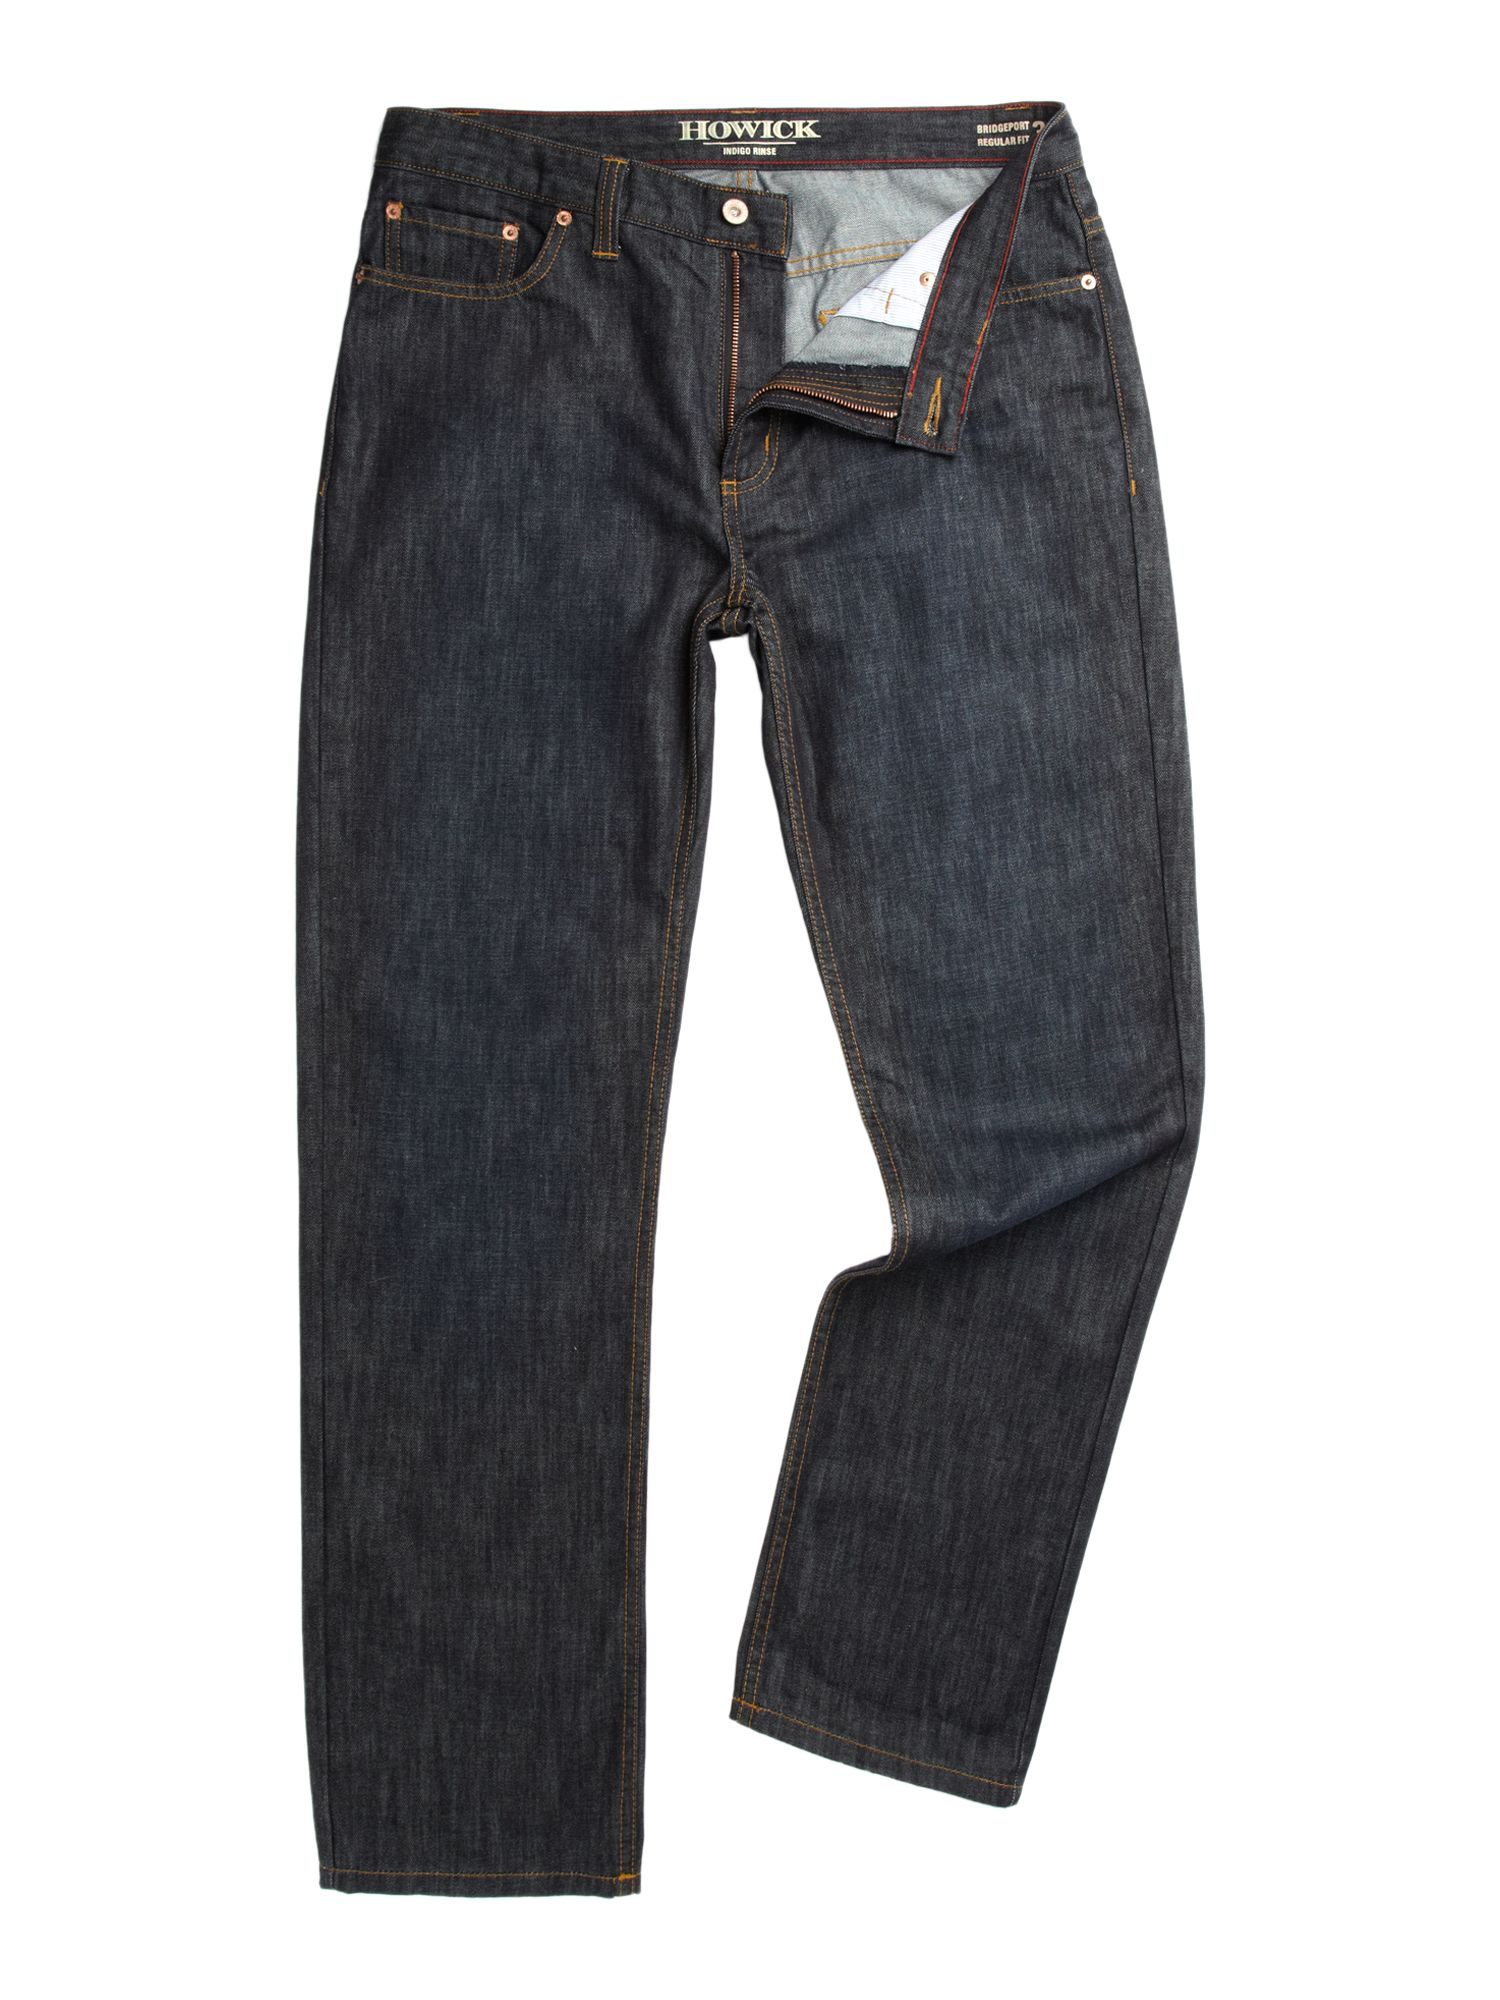 Bridgeport five pocket dark washed jeans